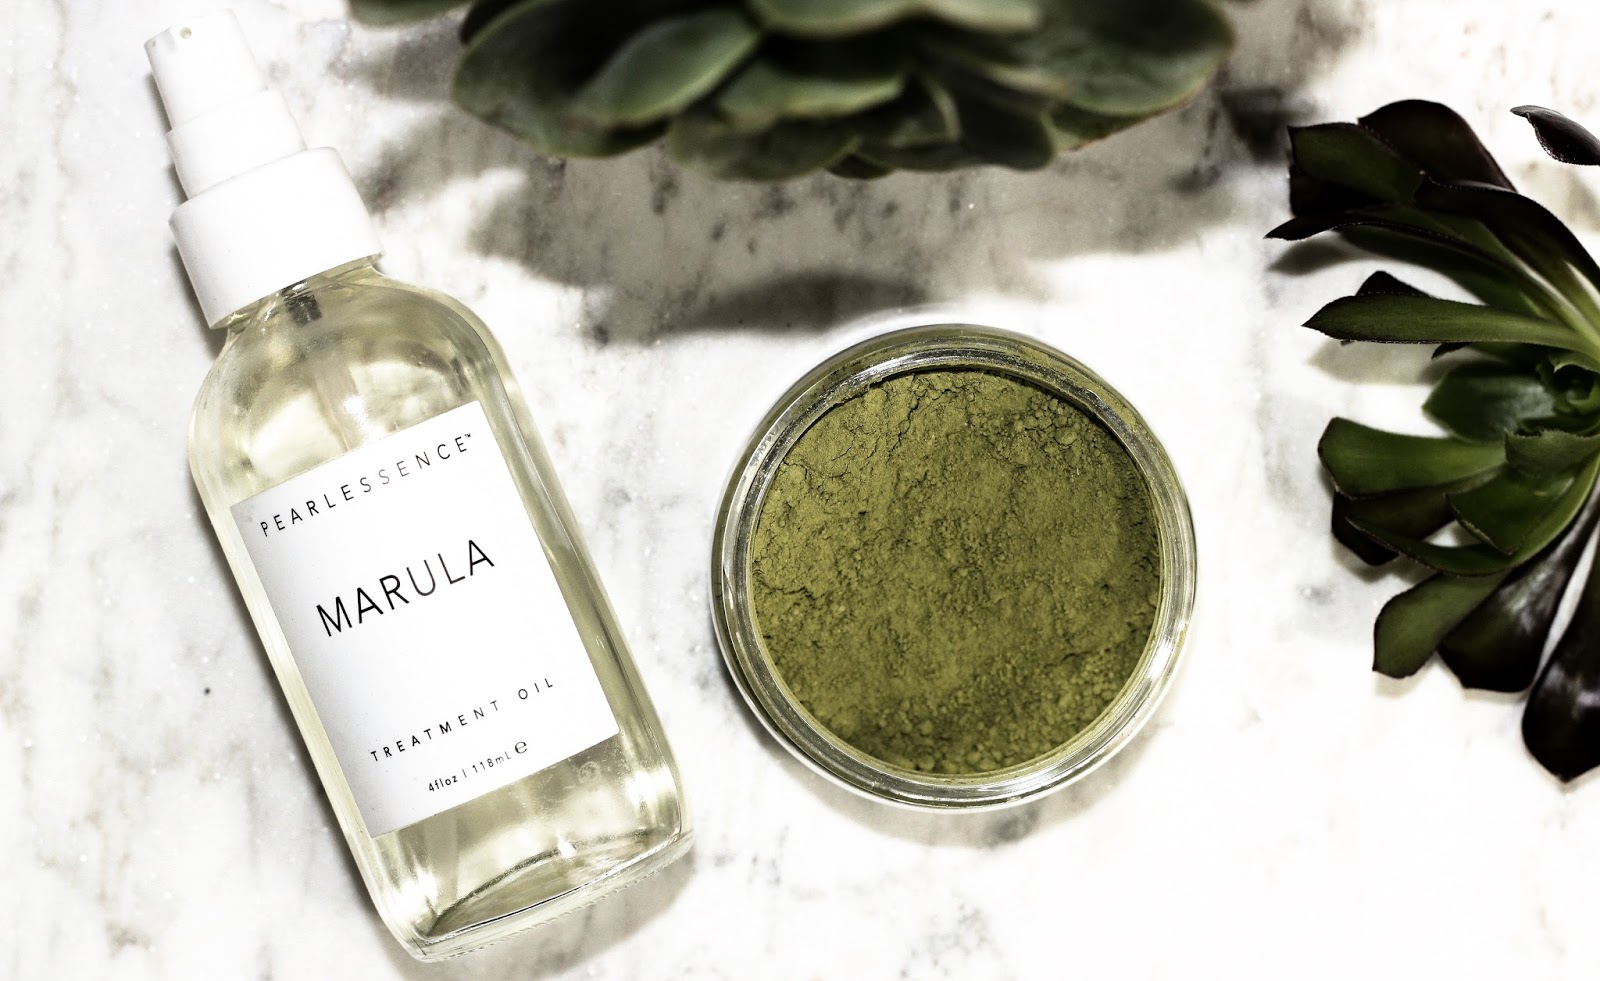 Matcha Tea + Marula Oil | #BeautyTalk